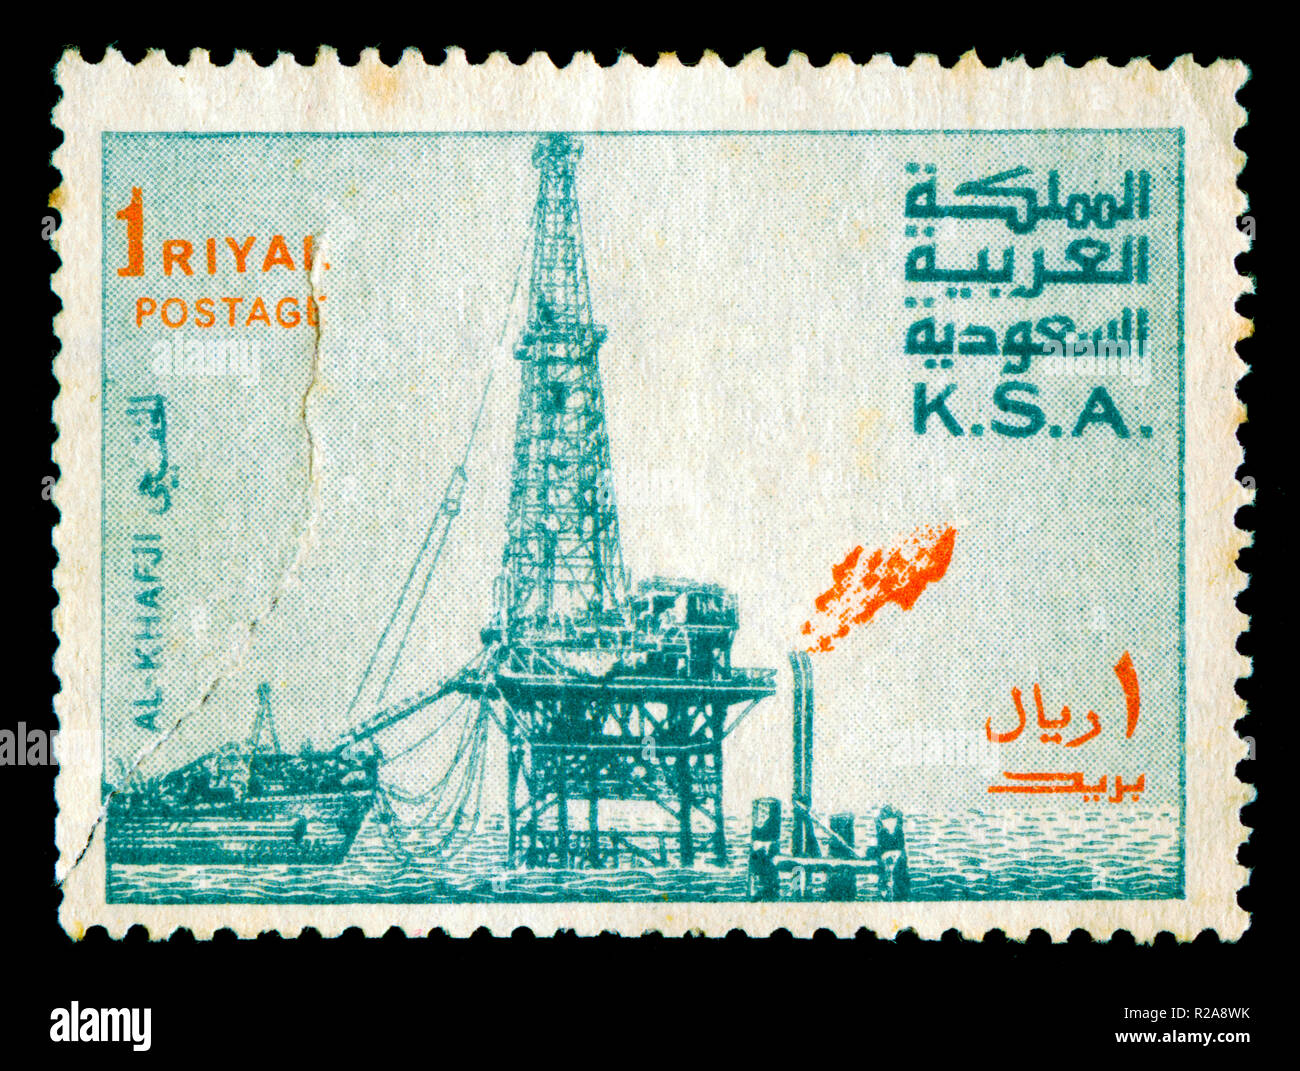 Postage stamp from Saudi Arabia in the Al Khafji Oil Rig series issued in 1983 - Stock Image